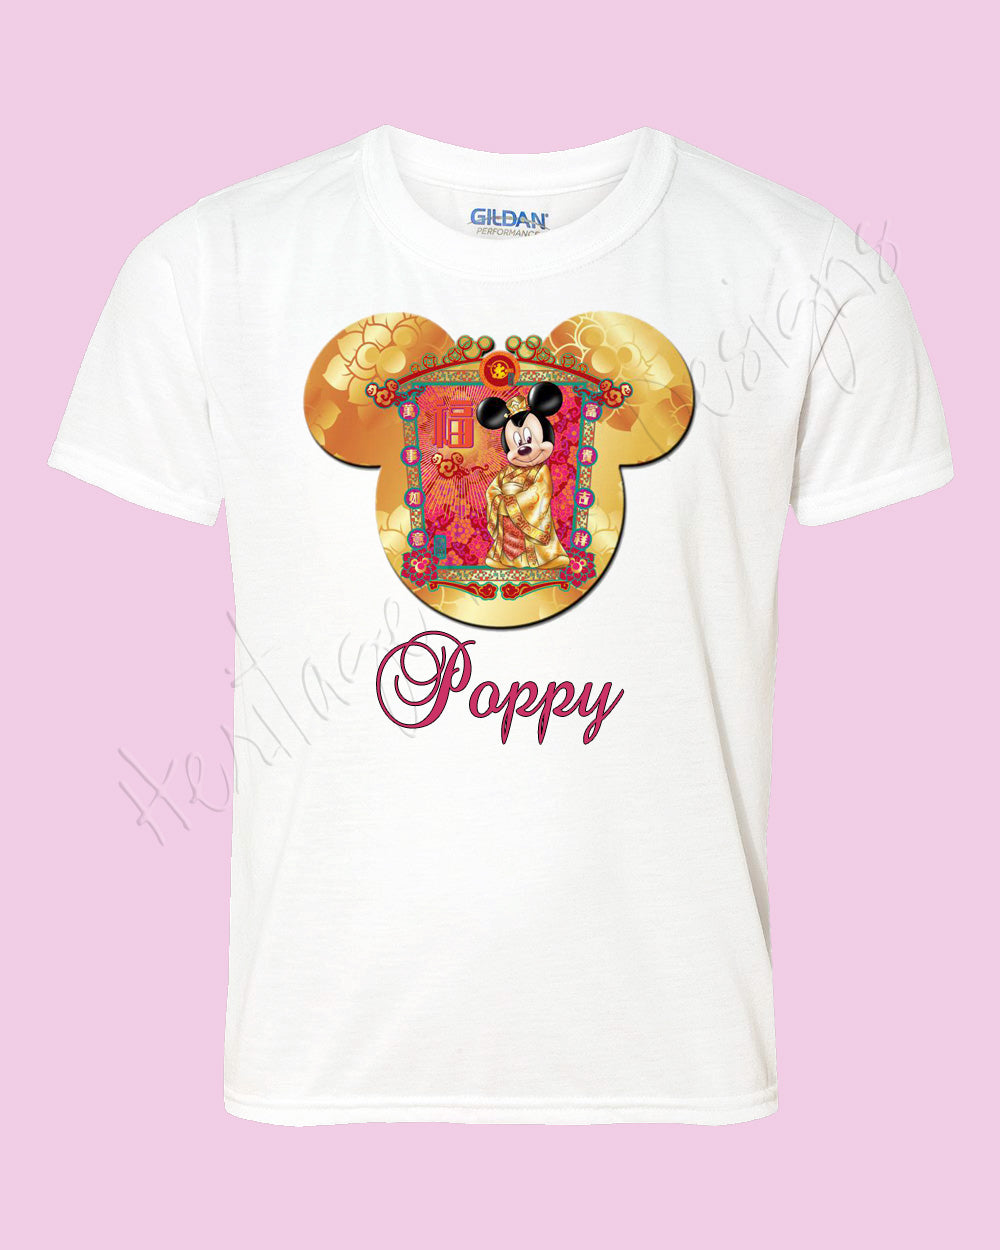 Personalized Hong Kong Disney mouse ears Icon Cherry Blossom Disney shirt - FREE personalization!